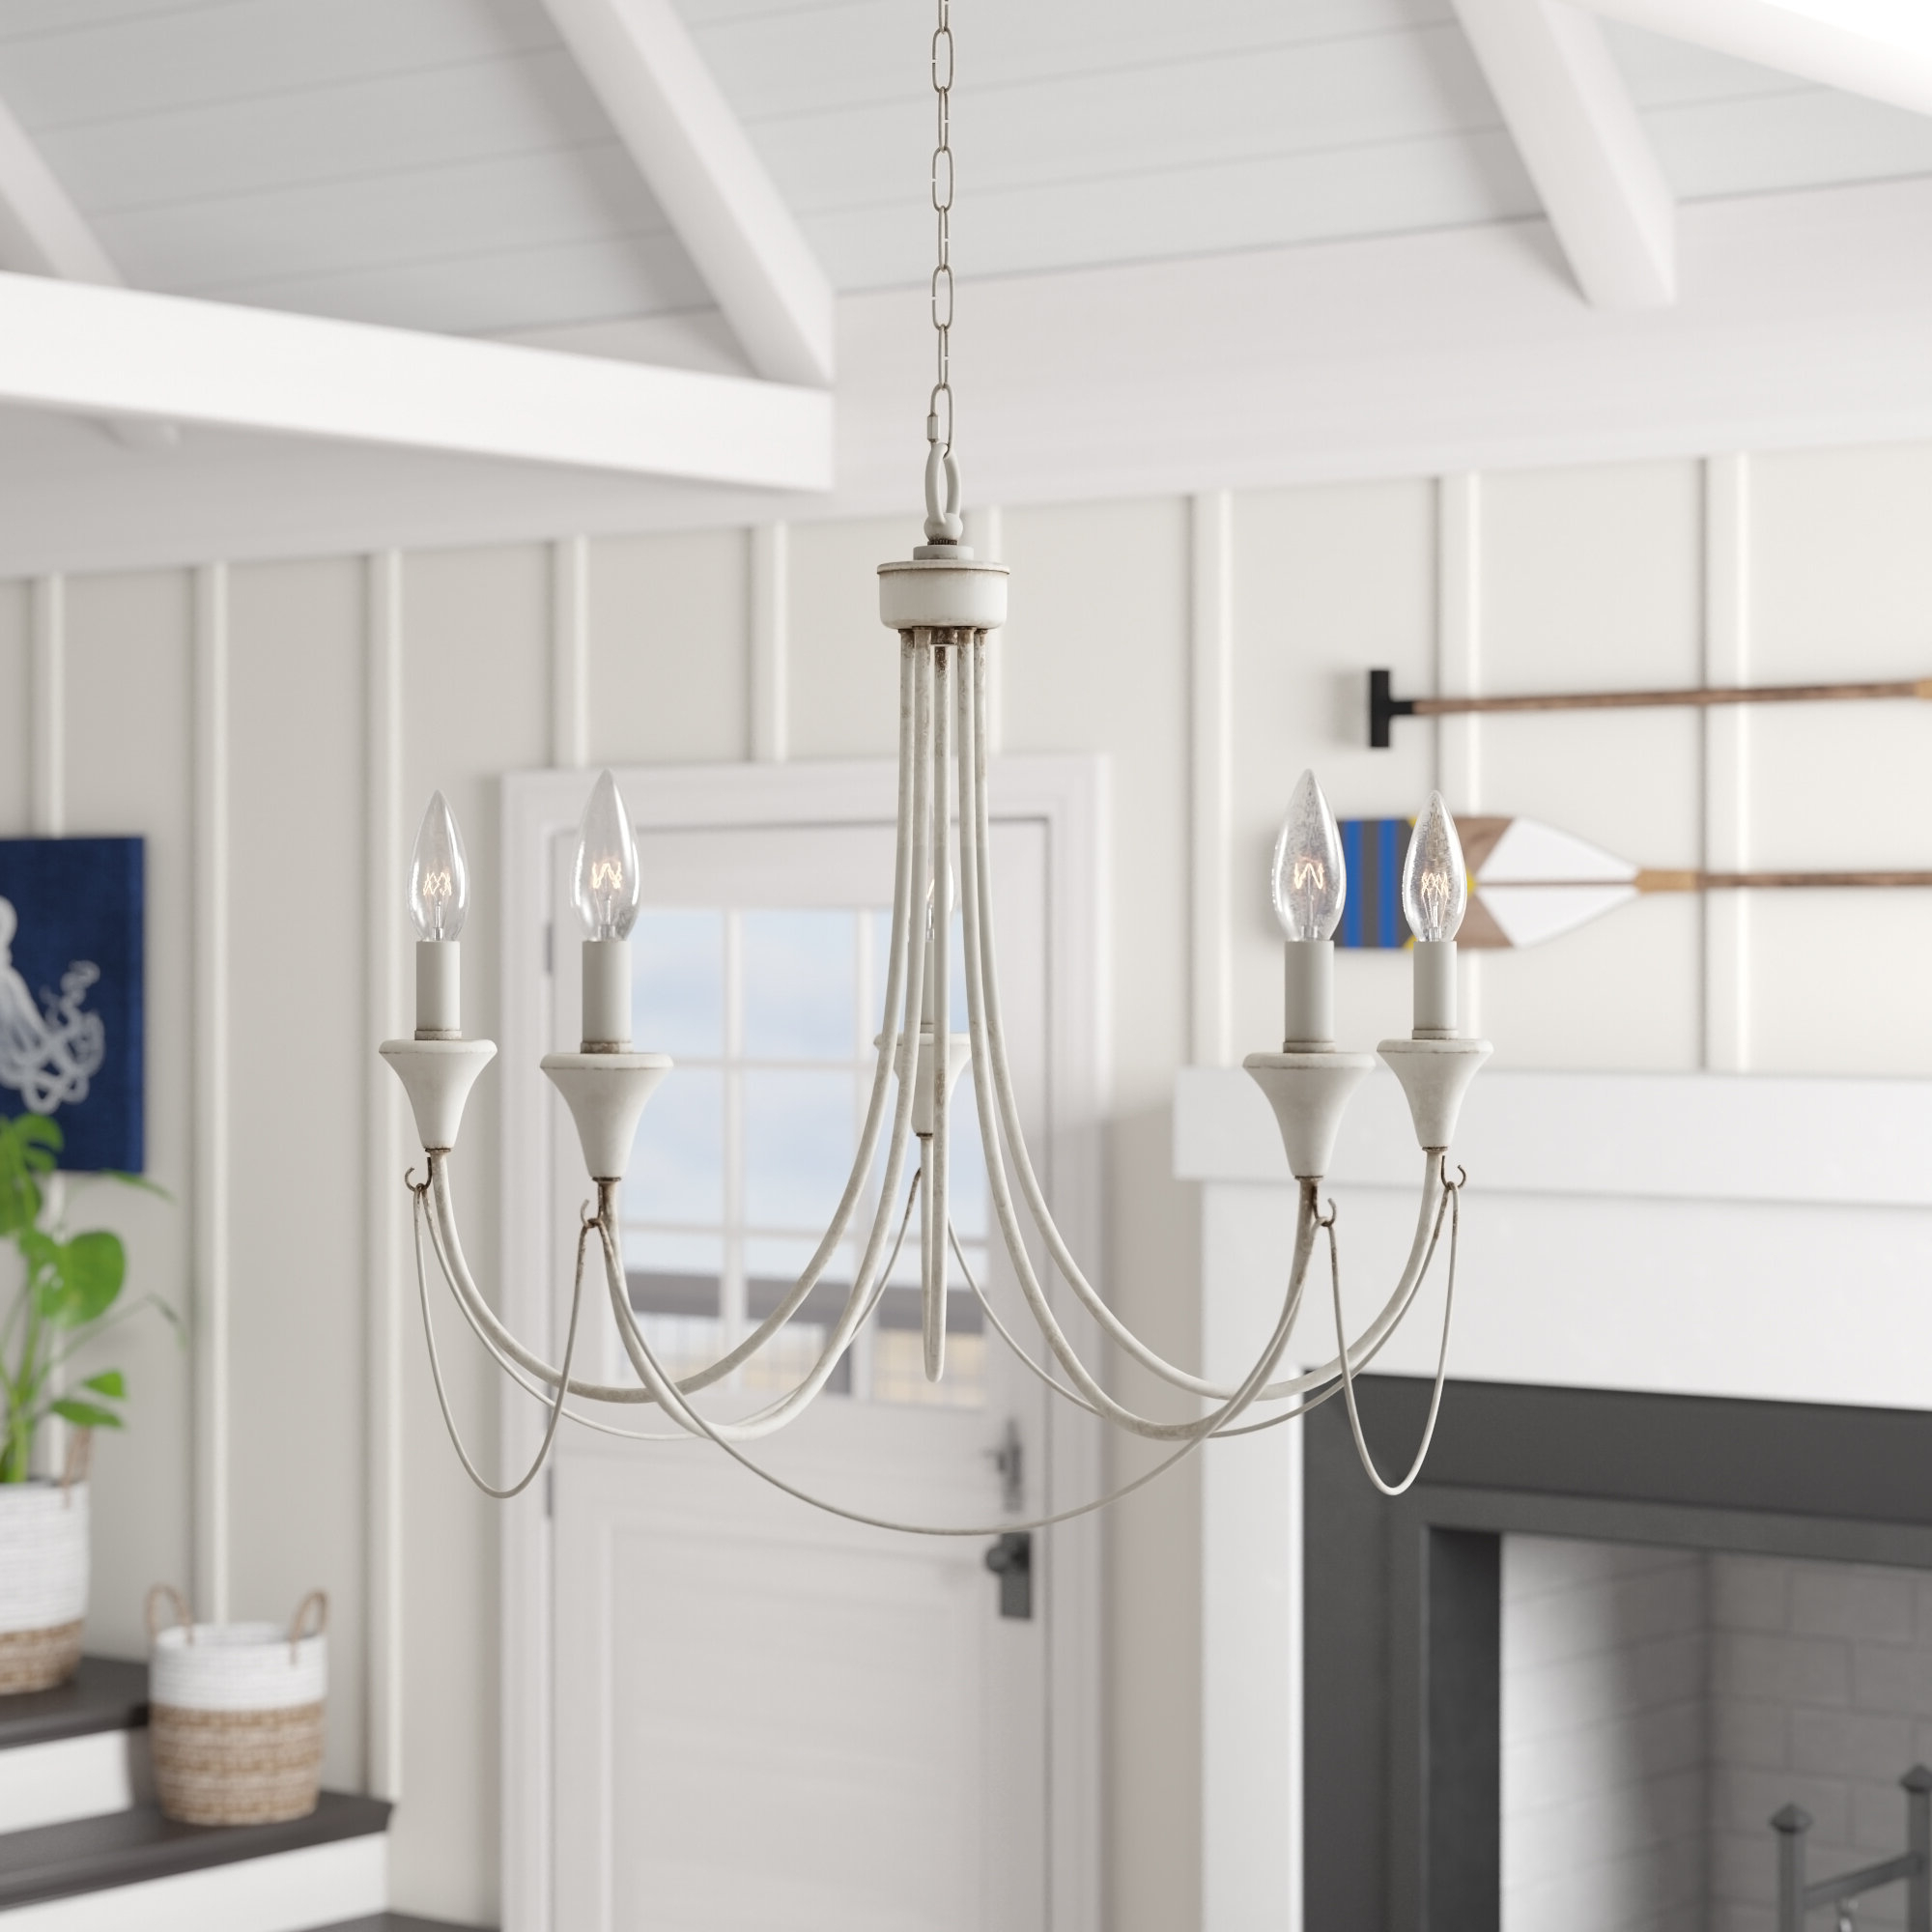 Widely Used Walczak 5 Light Candle Style Chandelier Pertaining To Florentina 5 Light Candle Style Chandeliers (View 5 of 20)